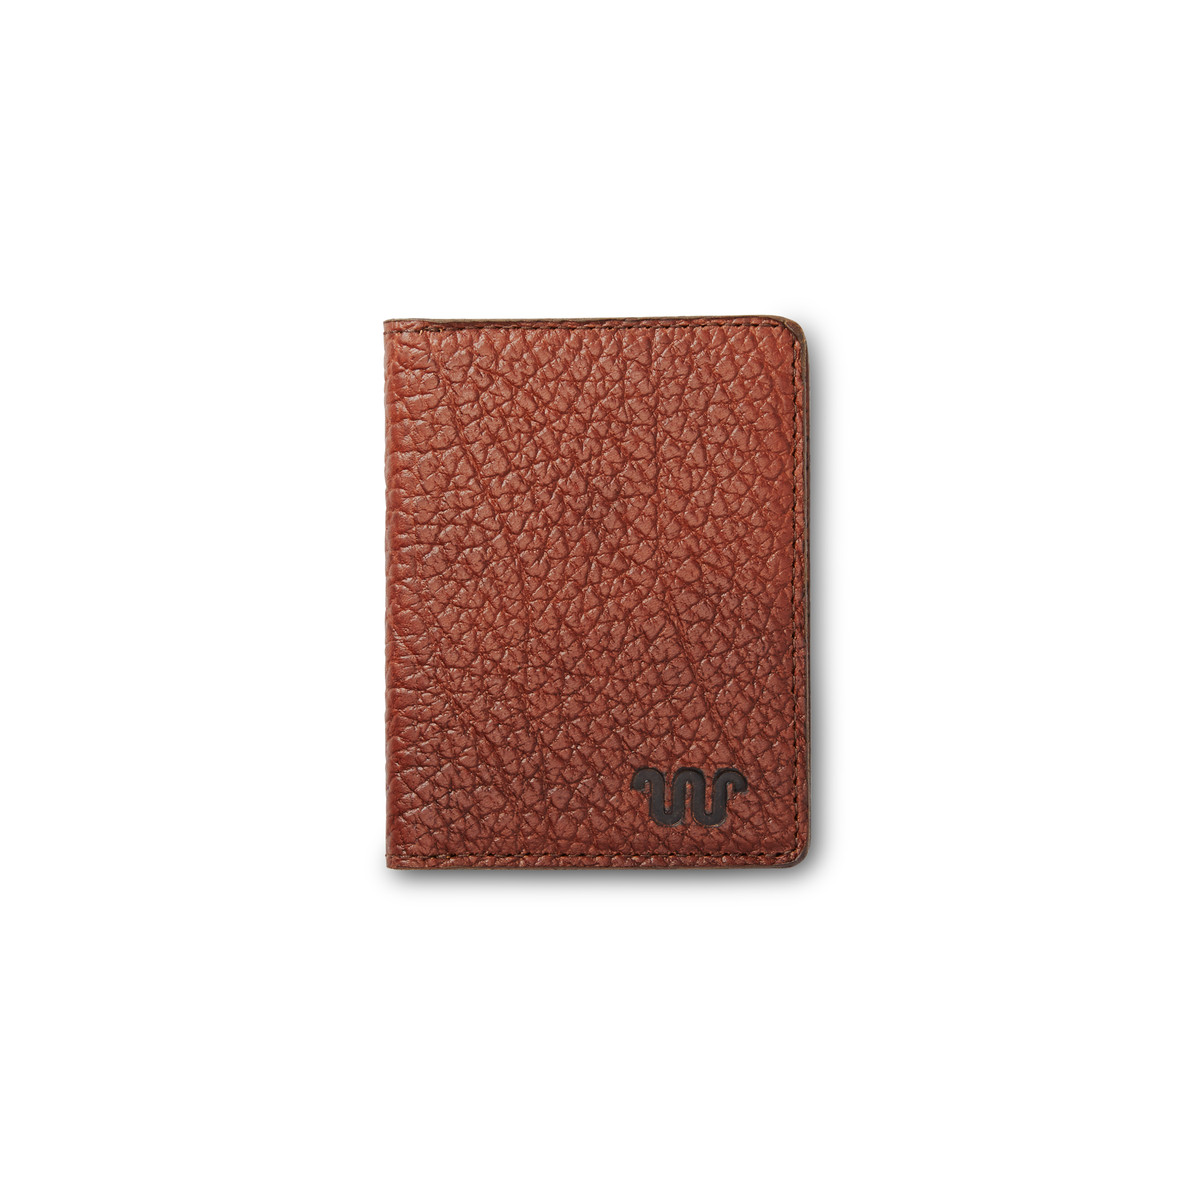 Saddle stich leather wallet